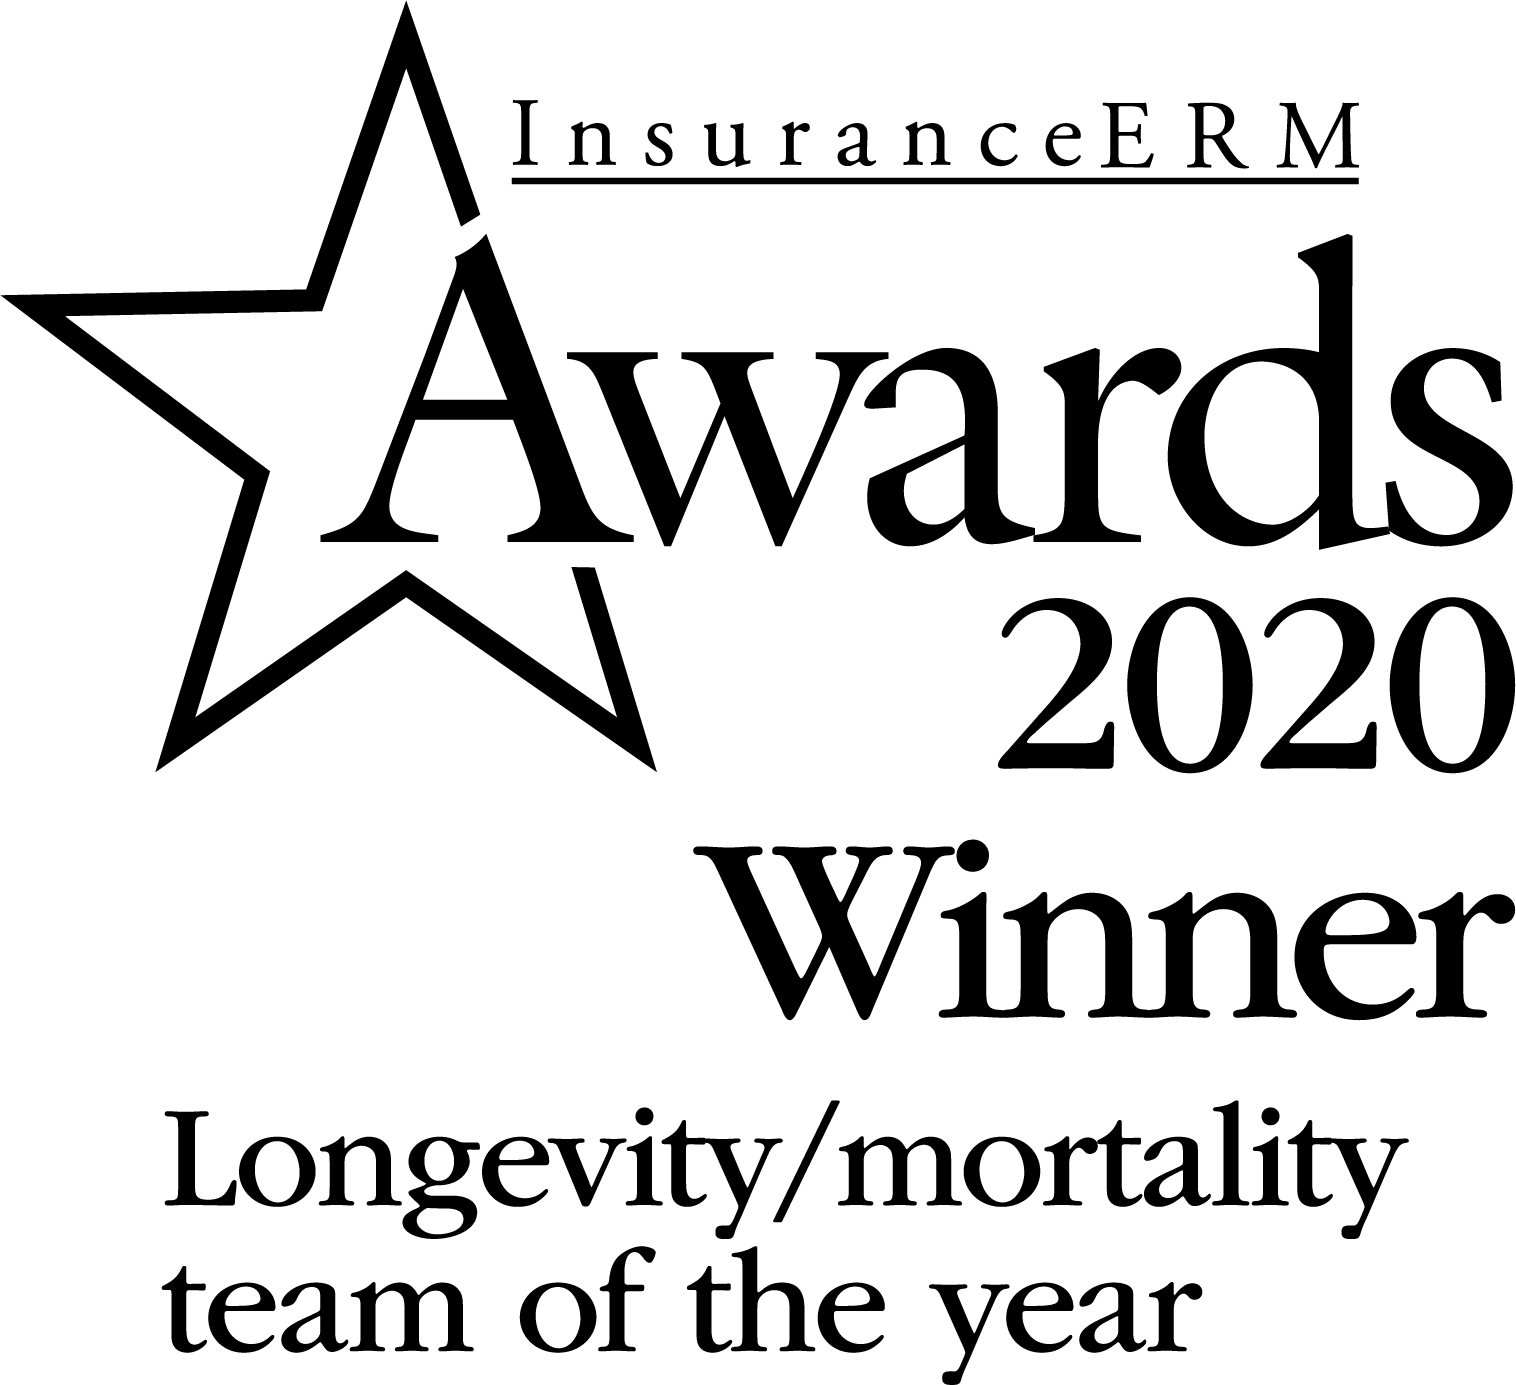 Longevity / mortality consultant of the year